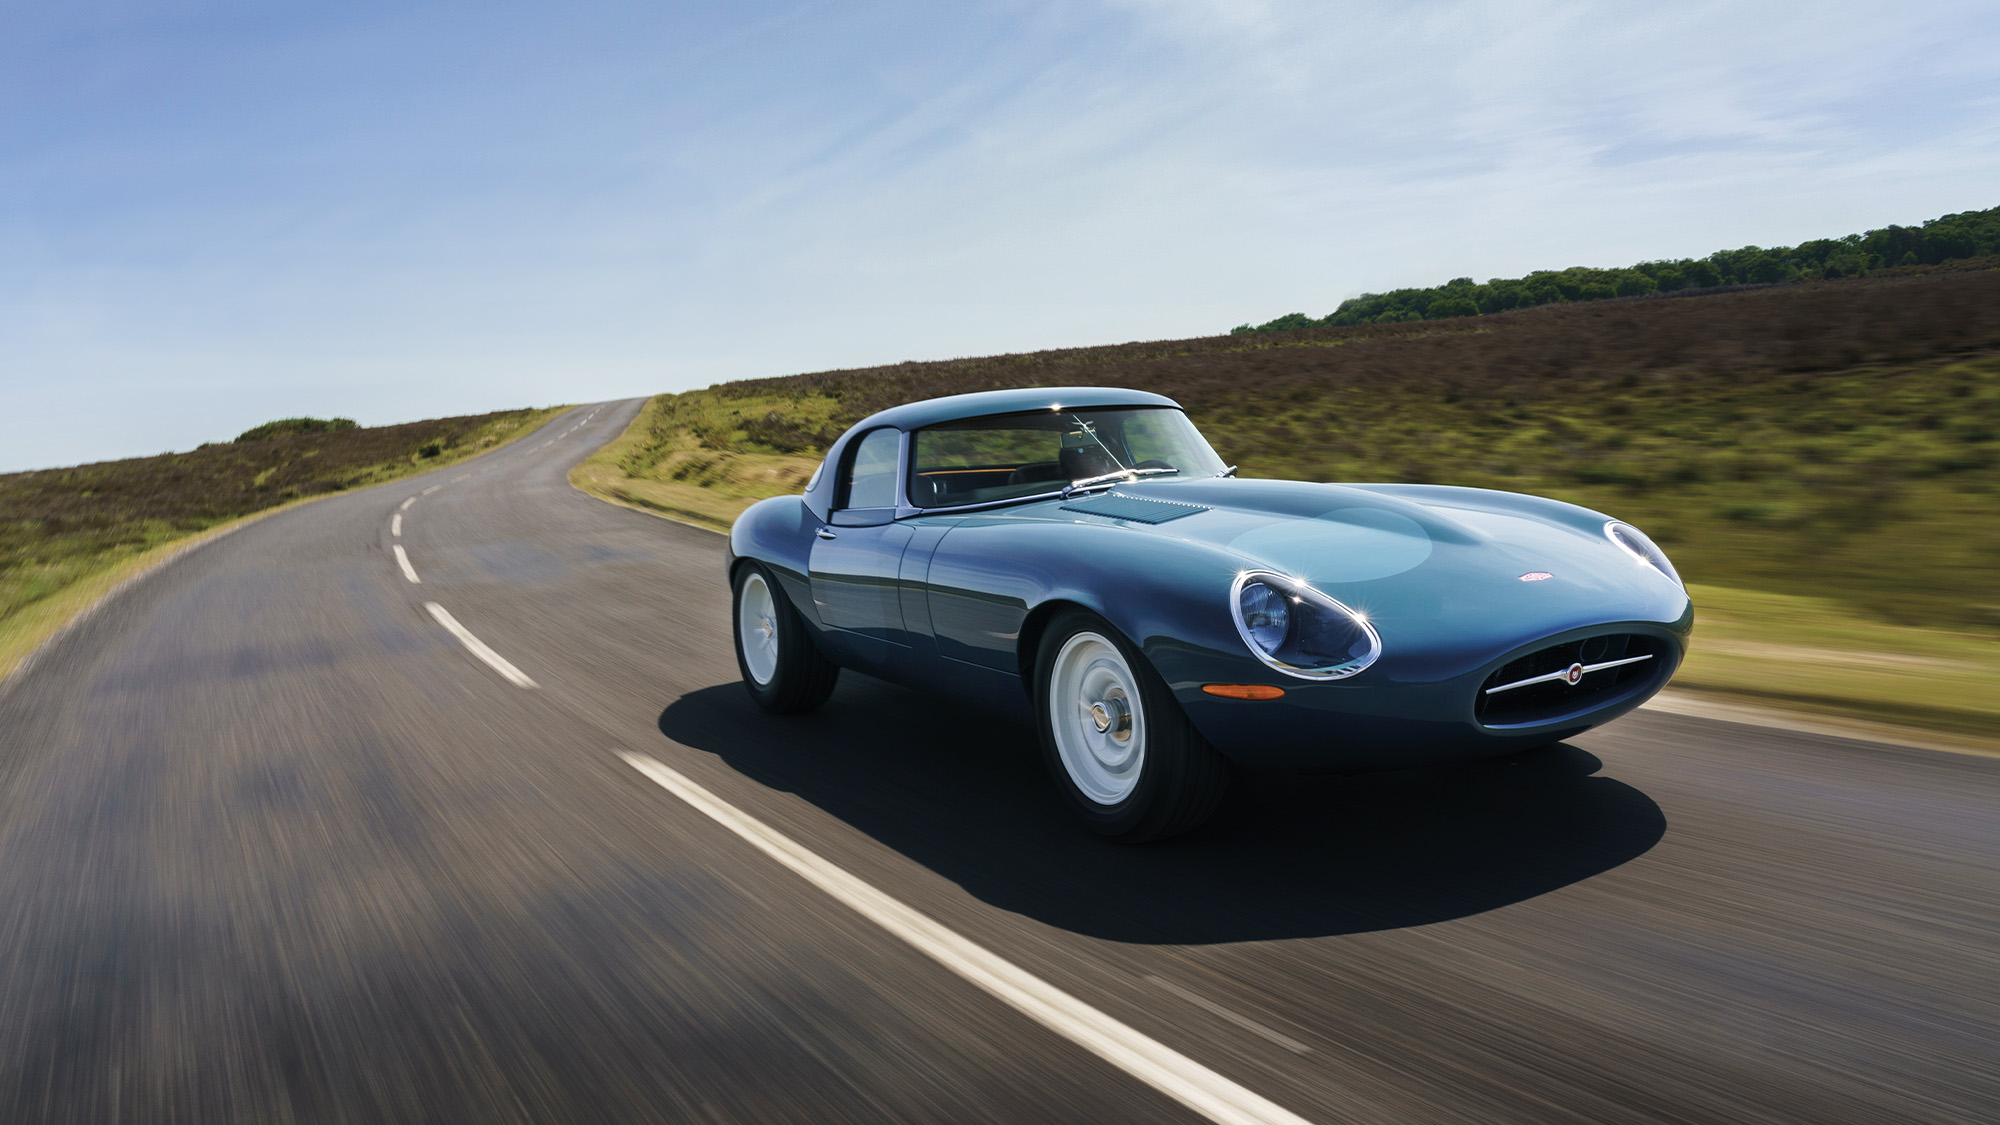 Front three quarters shot of the 2020 Eagle E-type Lightweight GT driving on a country road